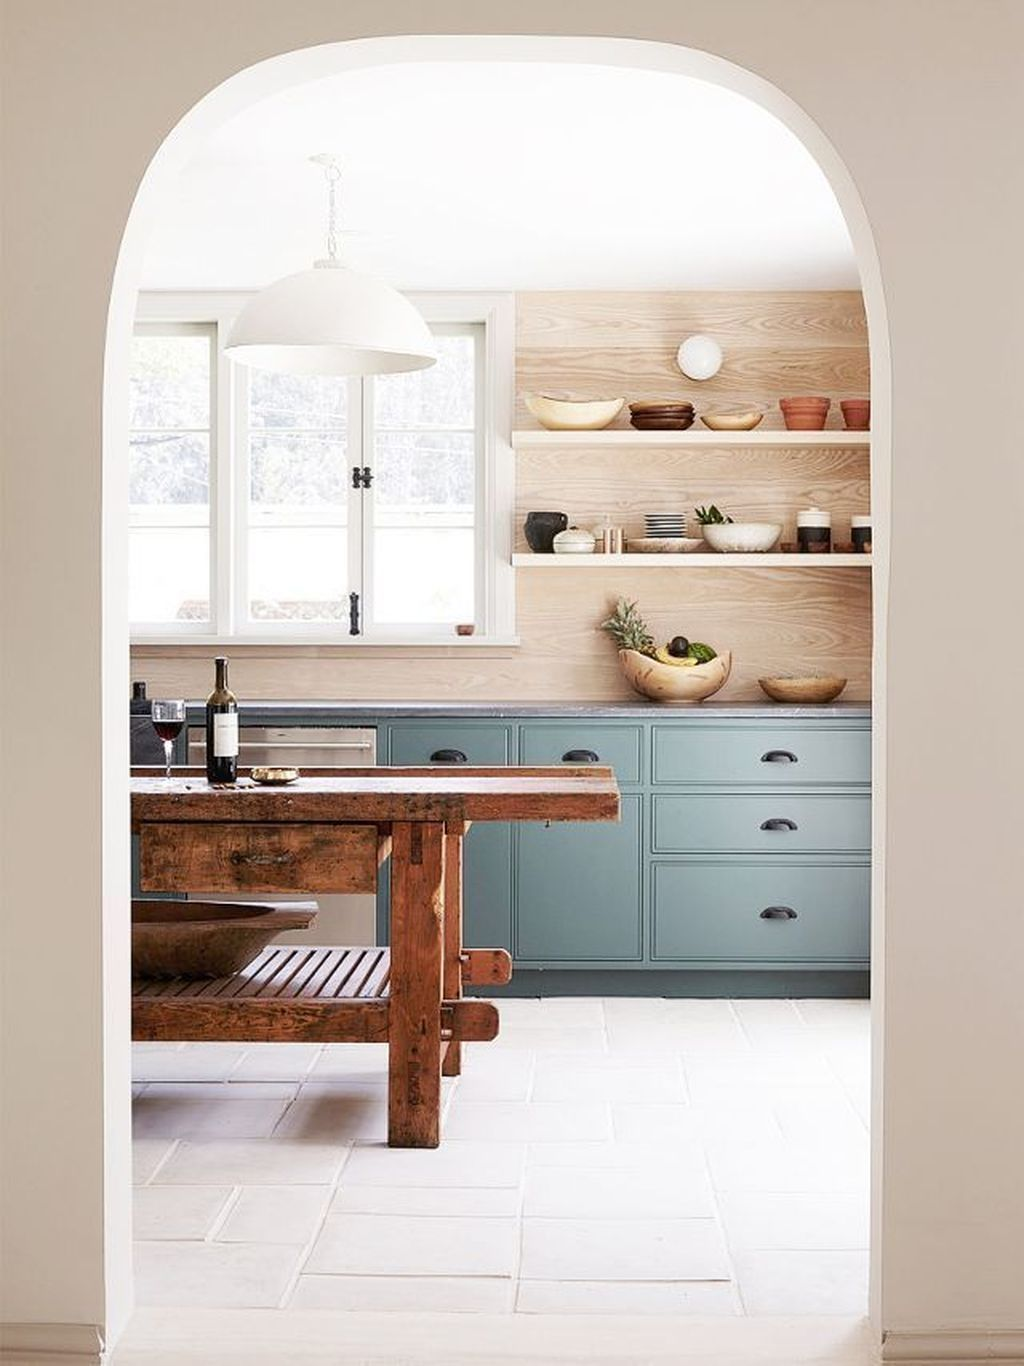 25 Eclectic Scandinavian Kitchen Designs (Let's Bring The Charm!) - 188061A237Abe1Edb017Fff9794Aa5Fd